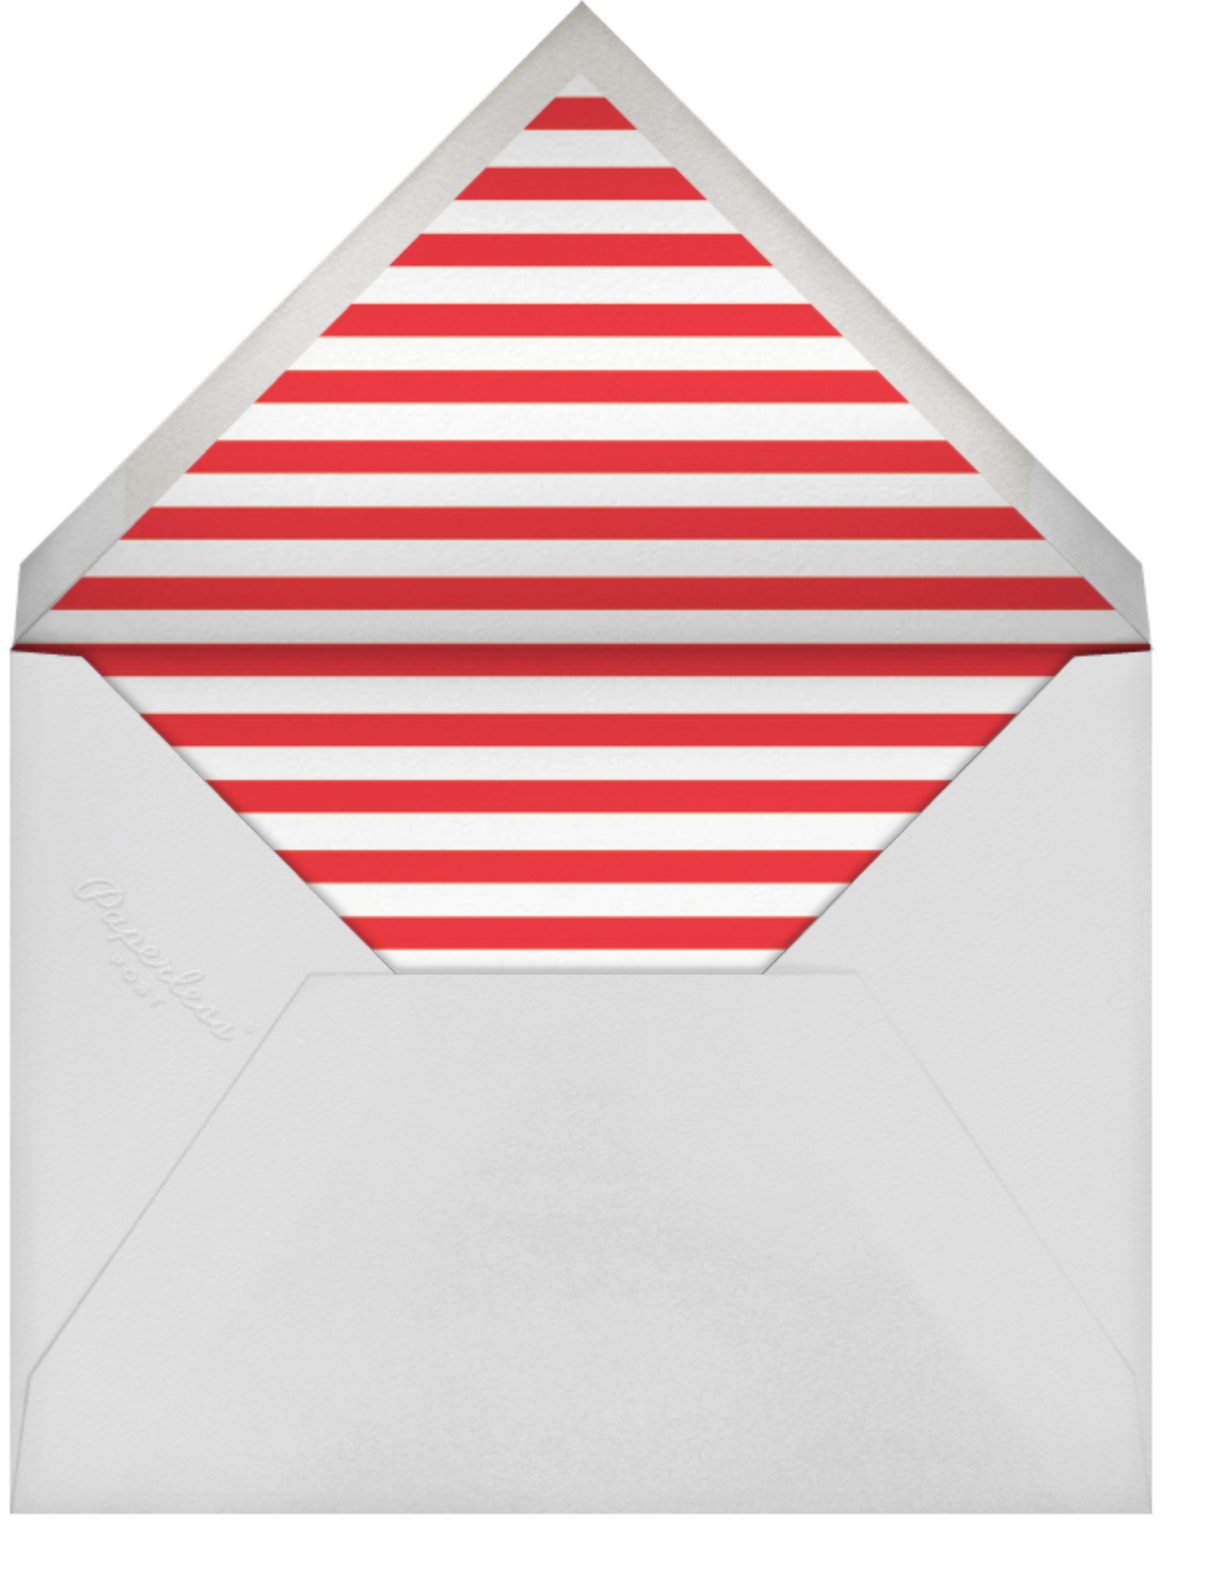 Be Merry Be Bright (Greeting) - Green - kate spade new york - Holiday cards - envelope back